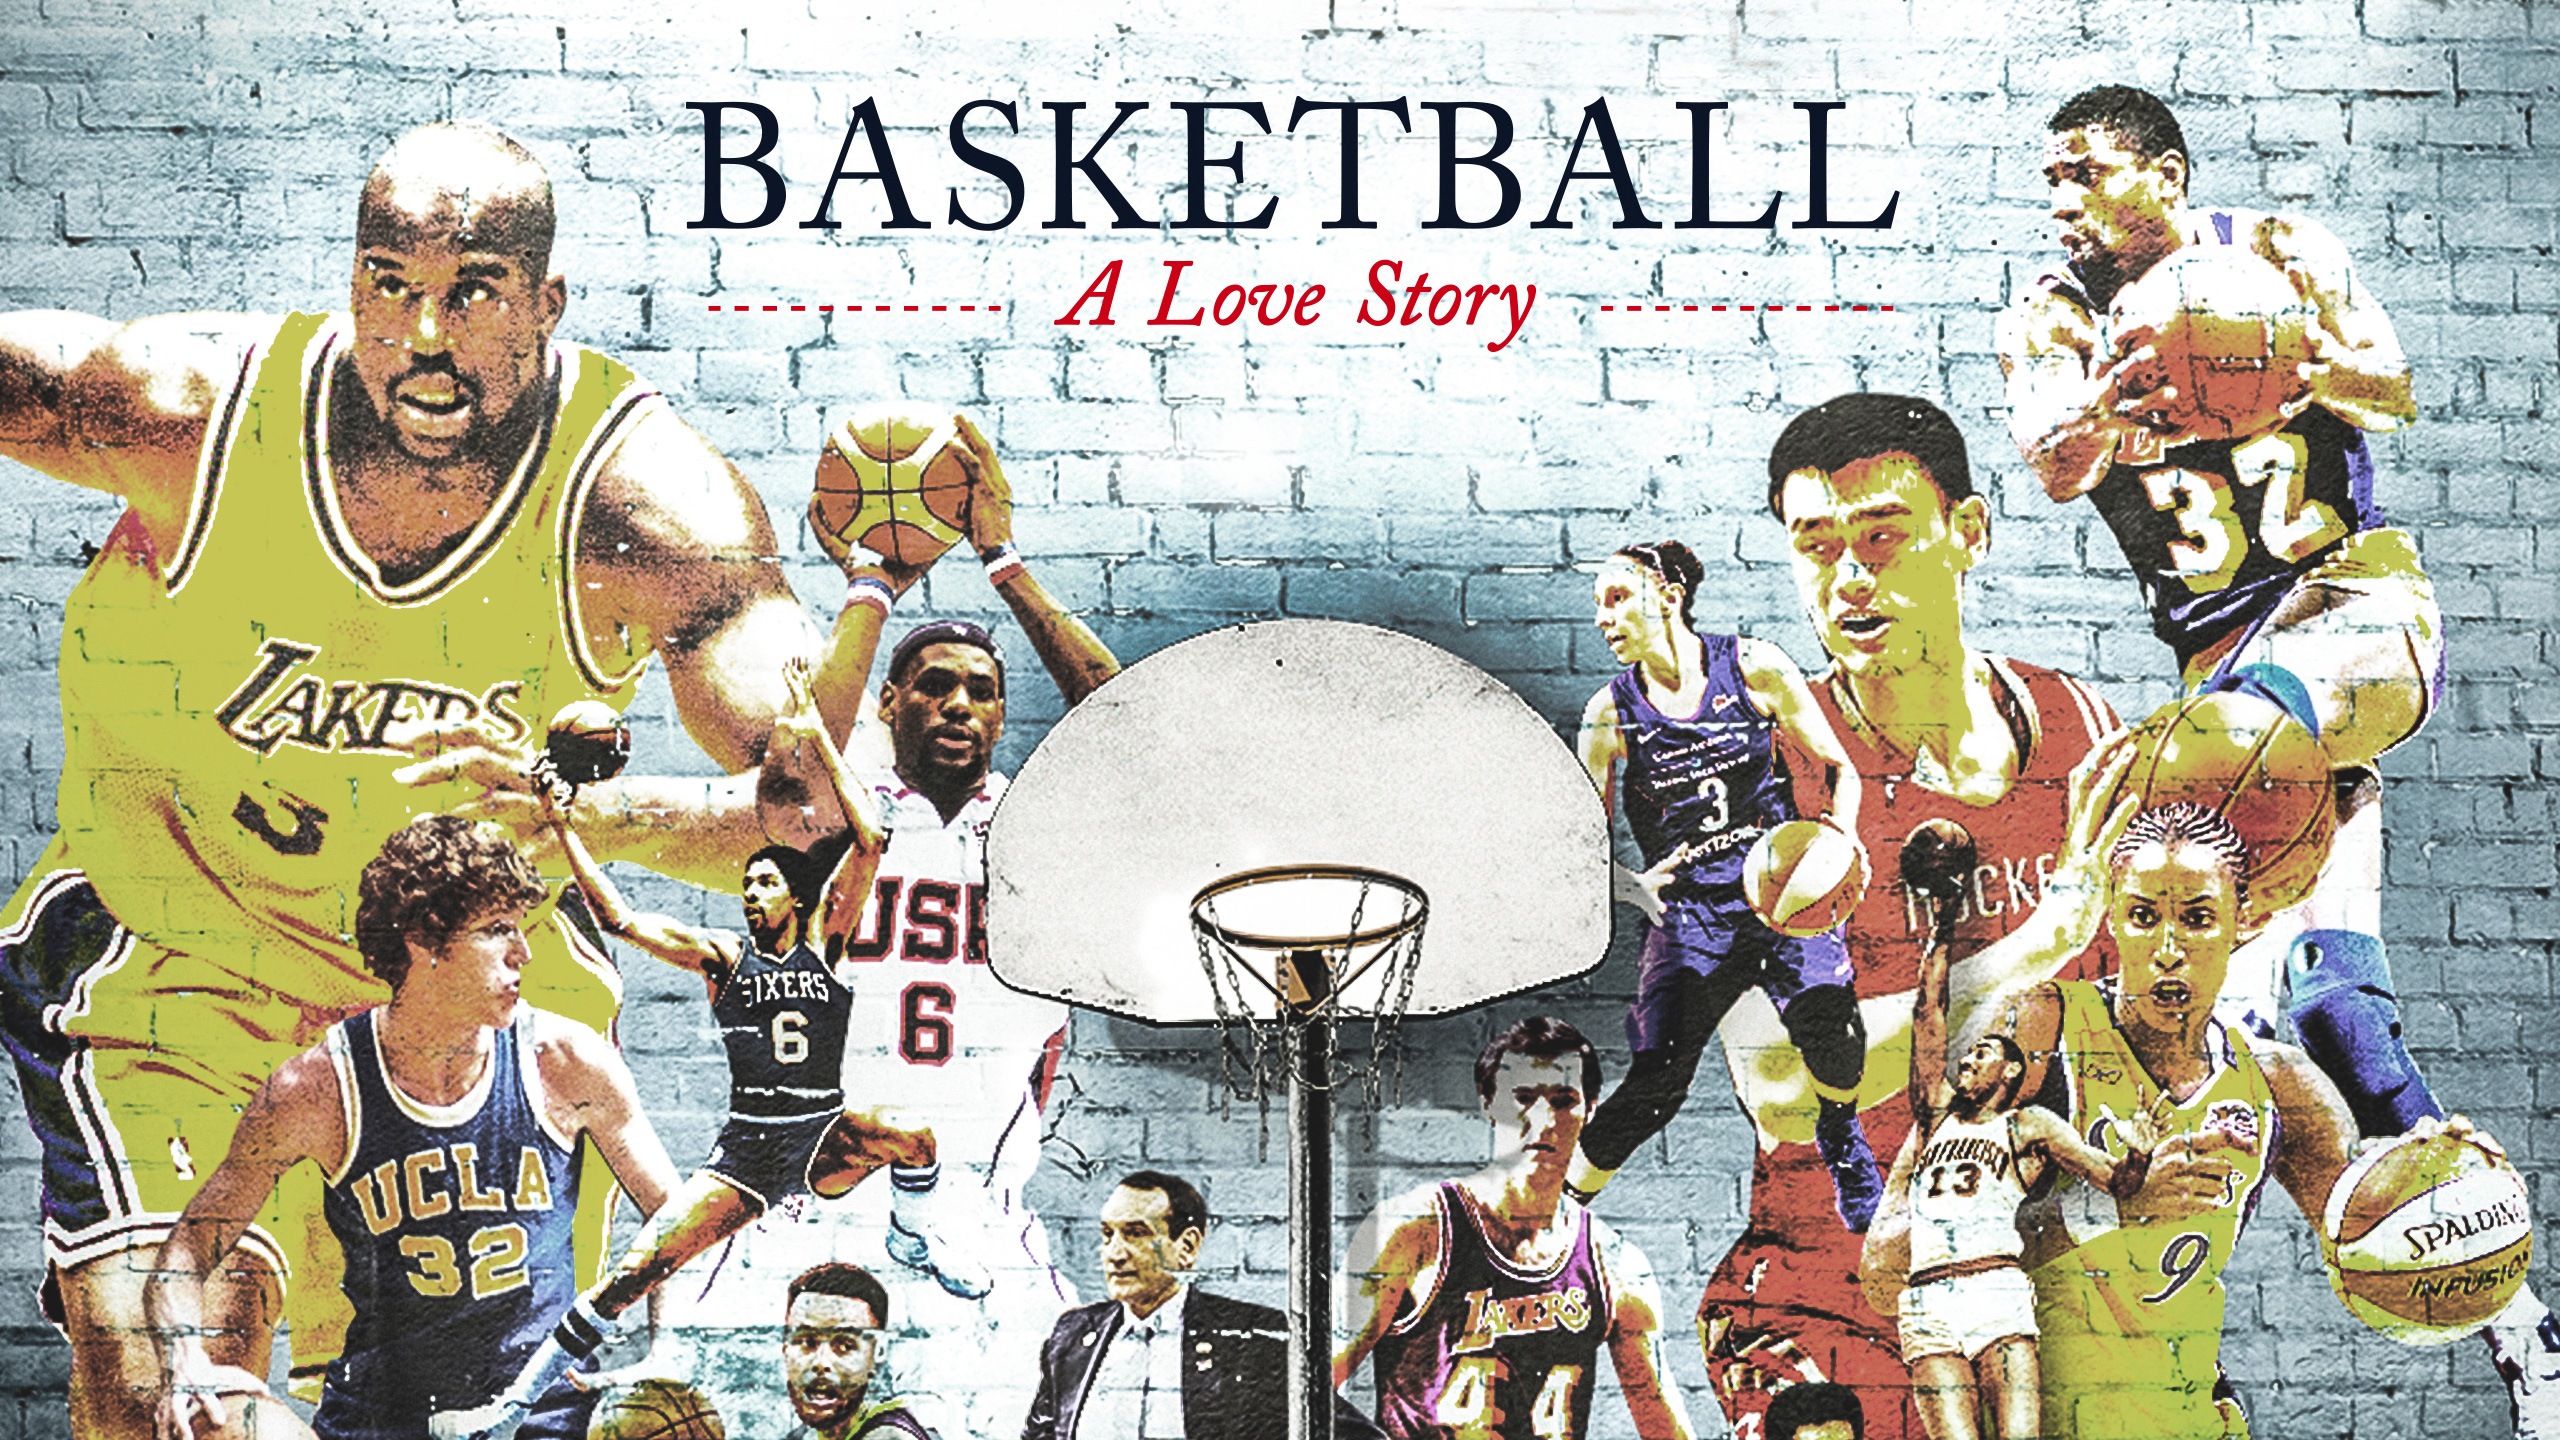 Basketball: A Love Story - Episode 5